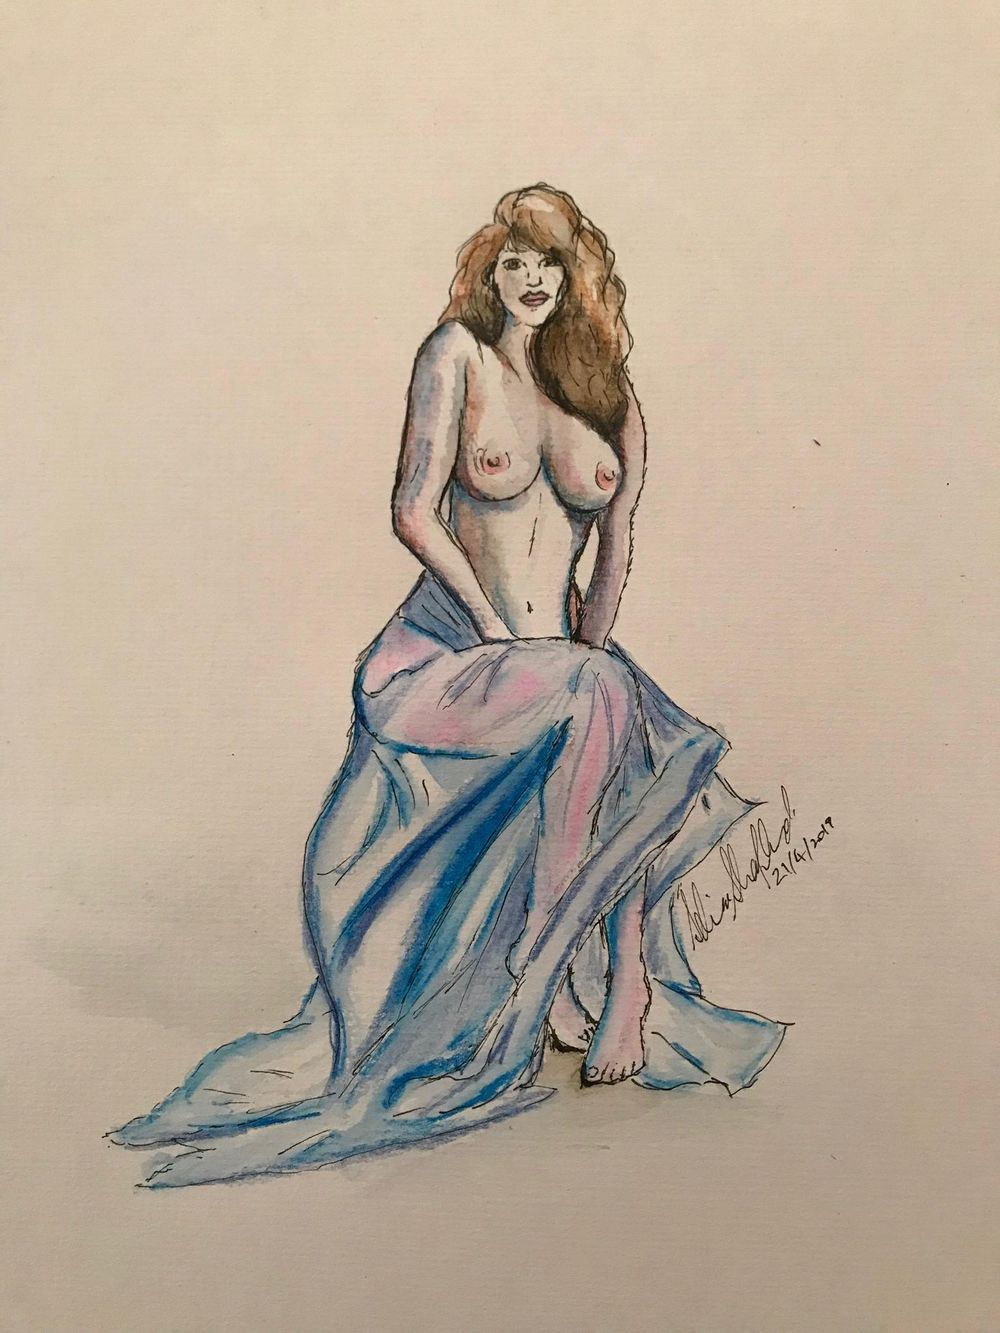 Sketching a model - image 2 - student project